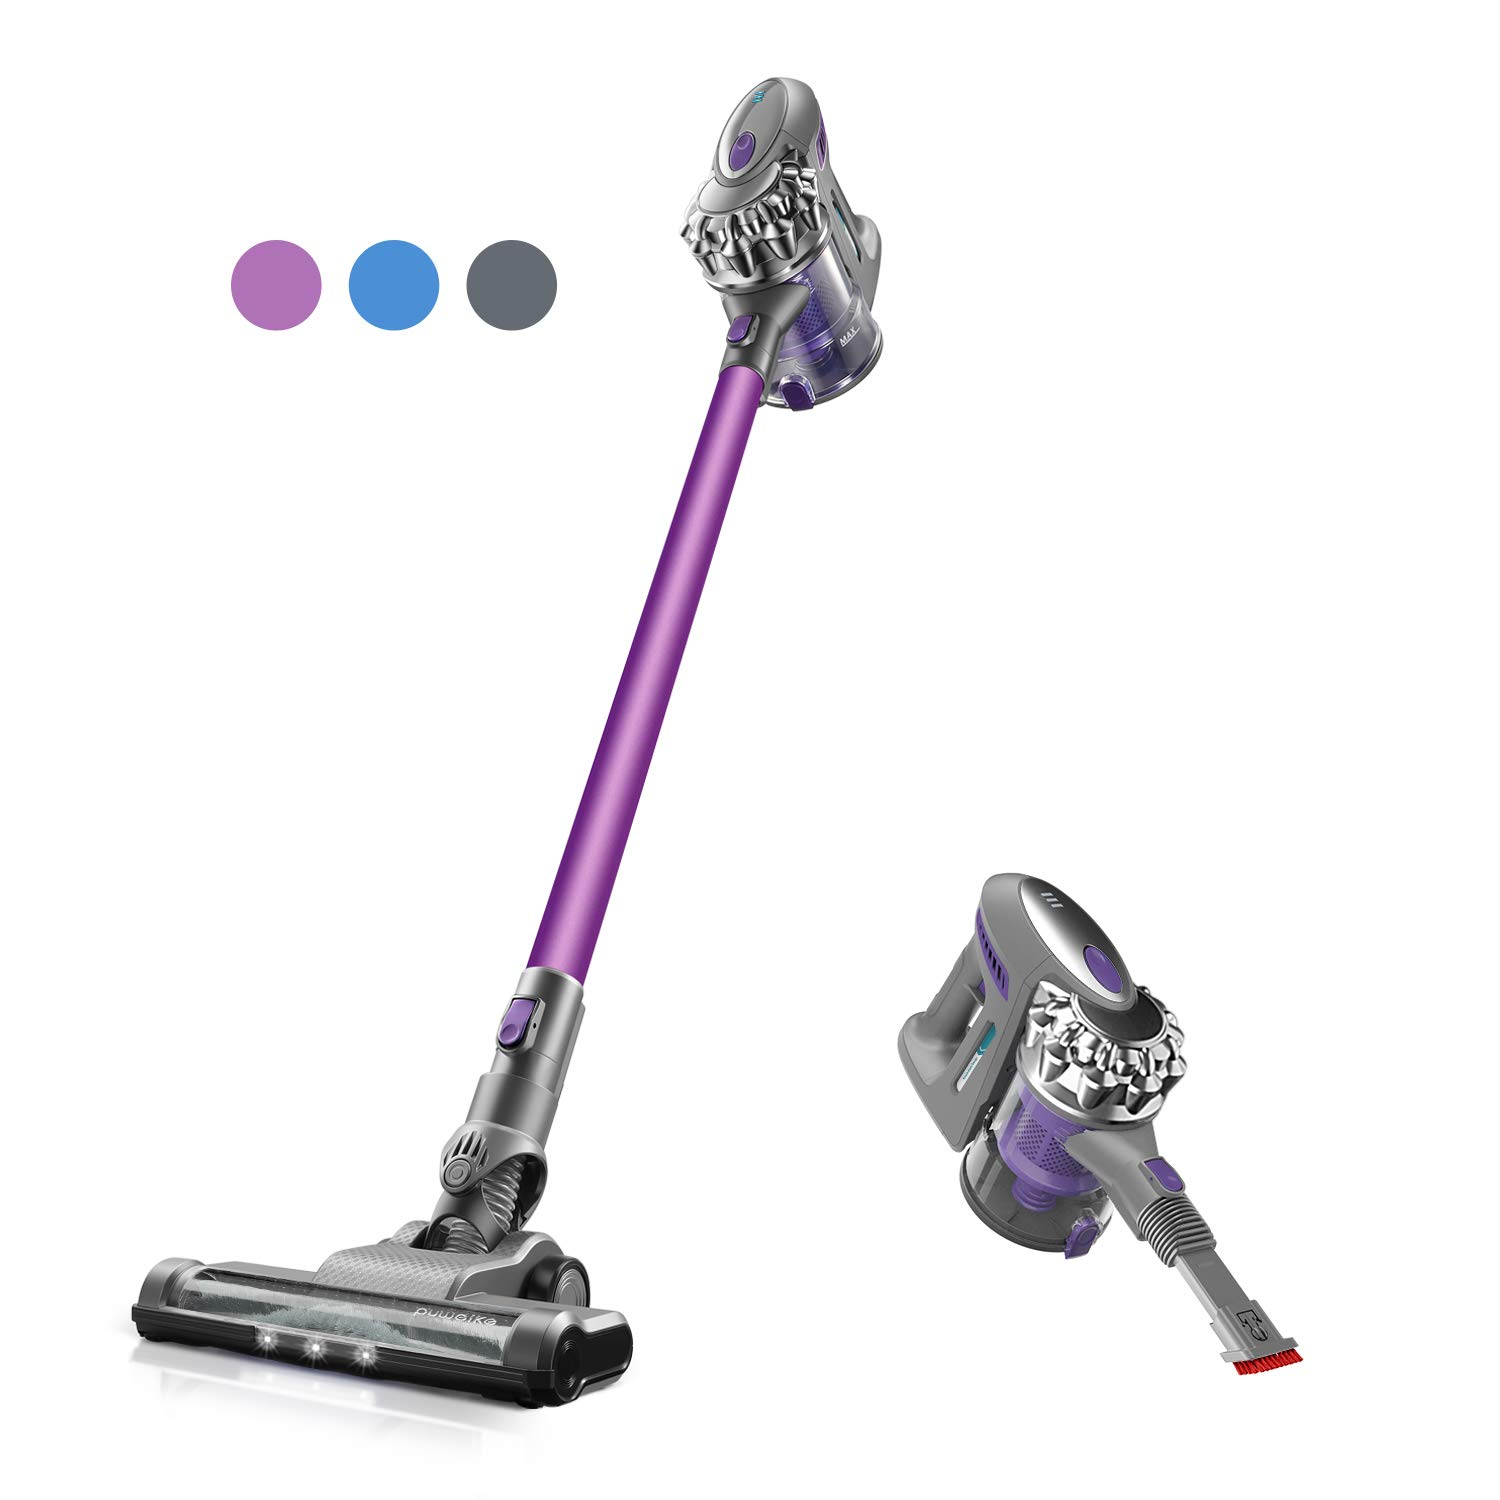 Puweike Cordless Stick Vacuum Cleaner - Hardwood Floors, Carpets and Pet Hair, Wireless Vacuum Cleaner 12Kpa Powerful Suction with Rechargeable Battery, 2 in 1 Design, P80 (Purple)